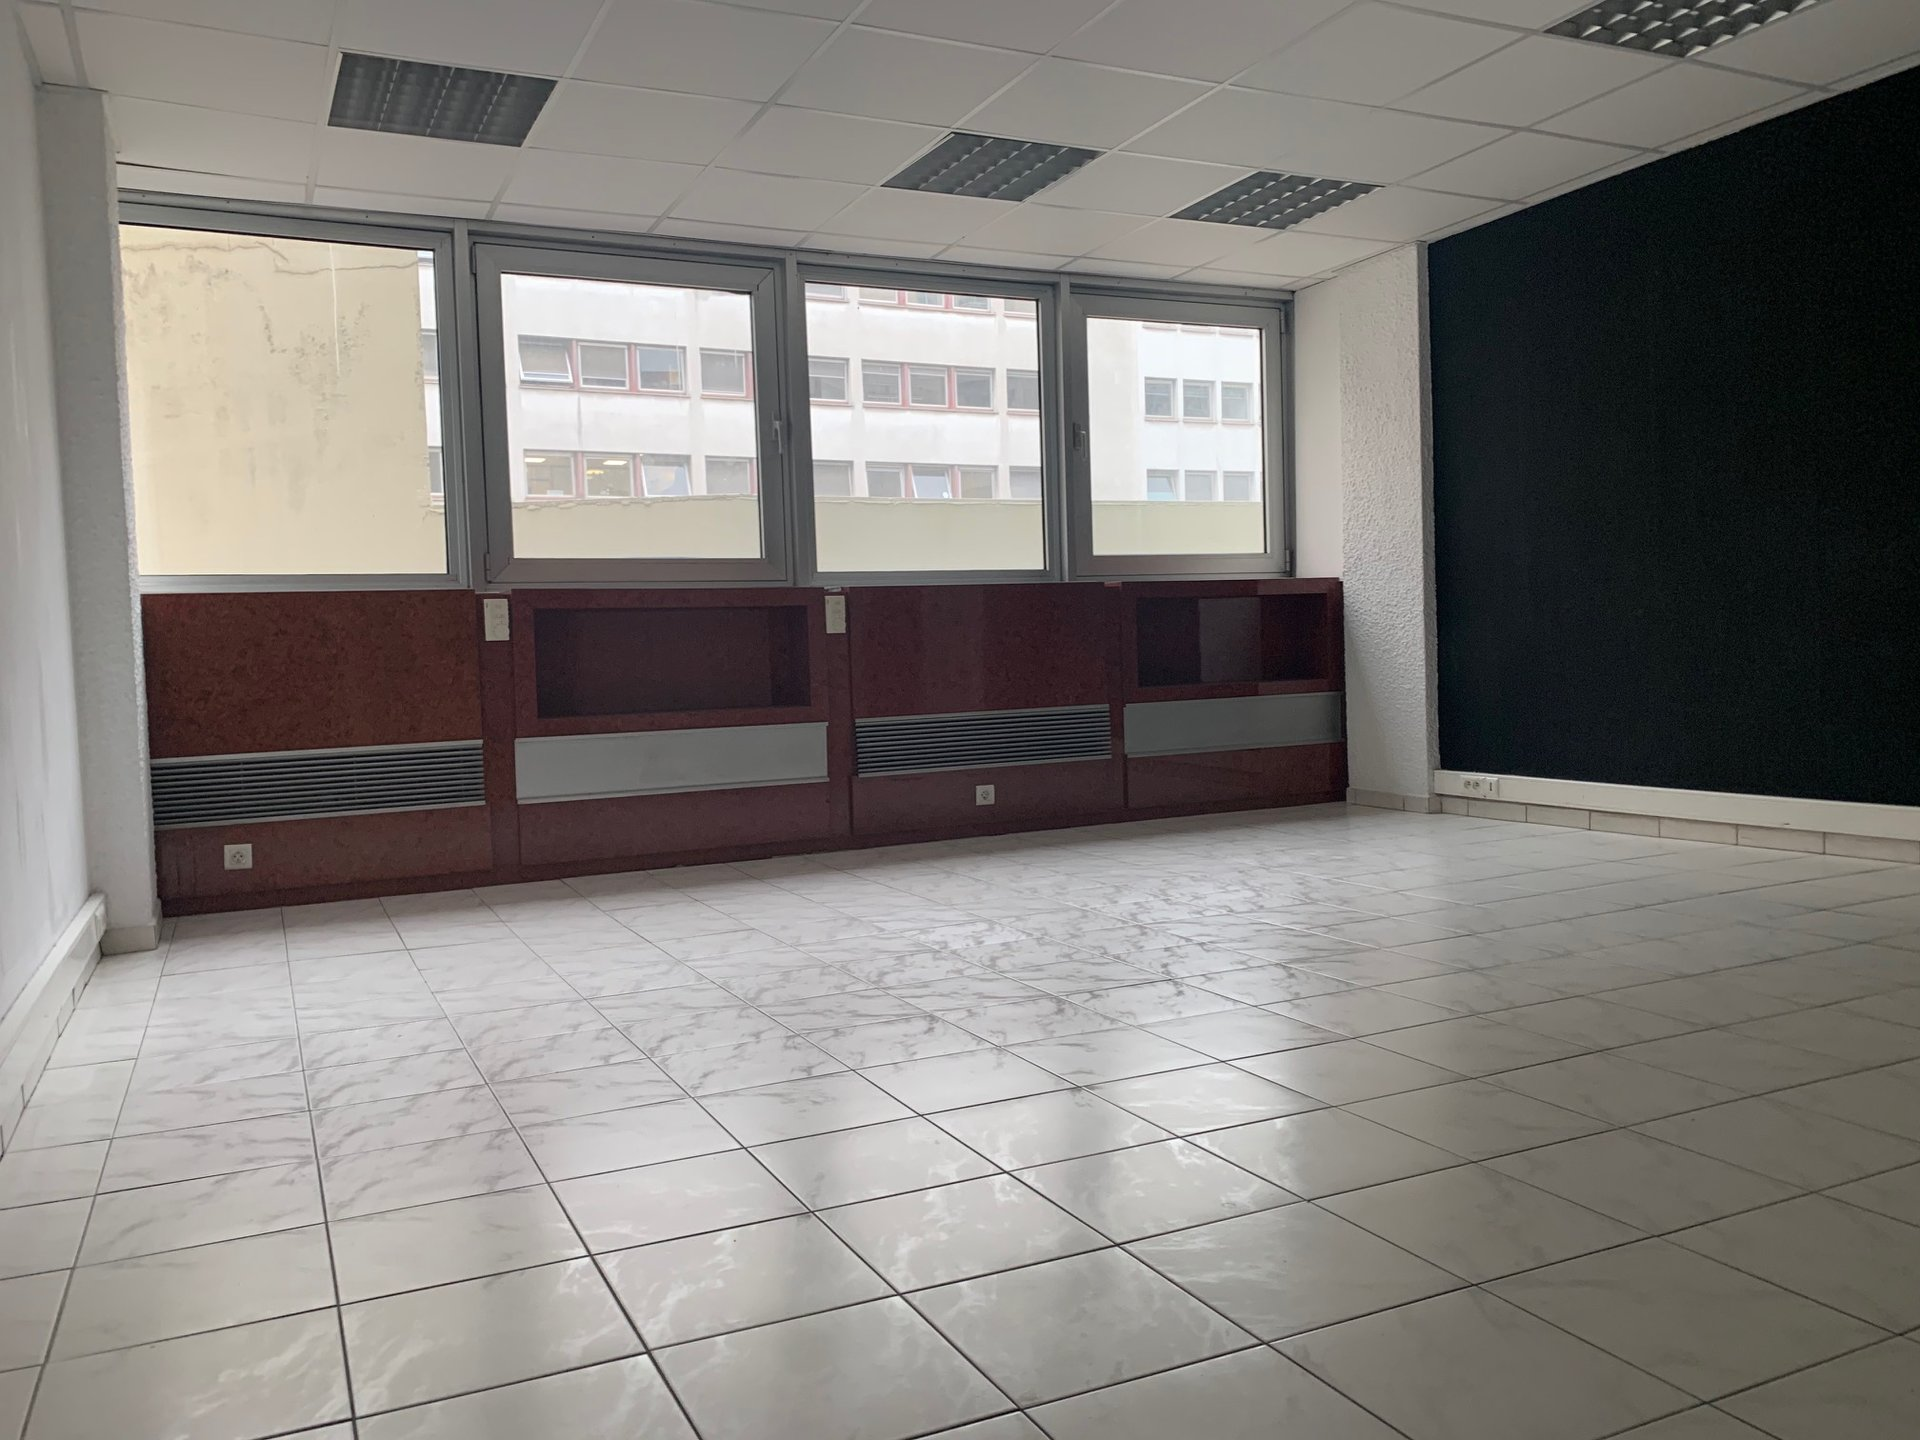 LOCATION PURE-NICE-CENTRE VILLE-30m2